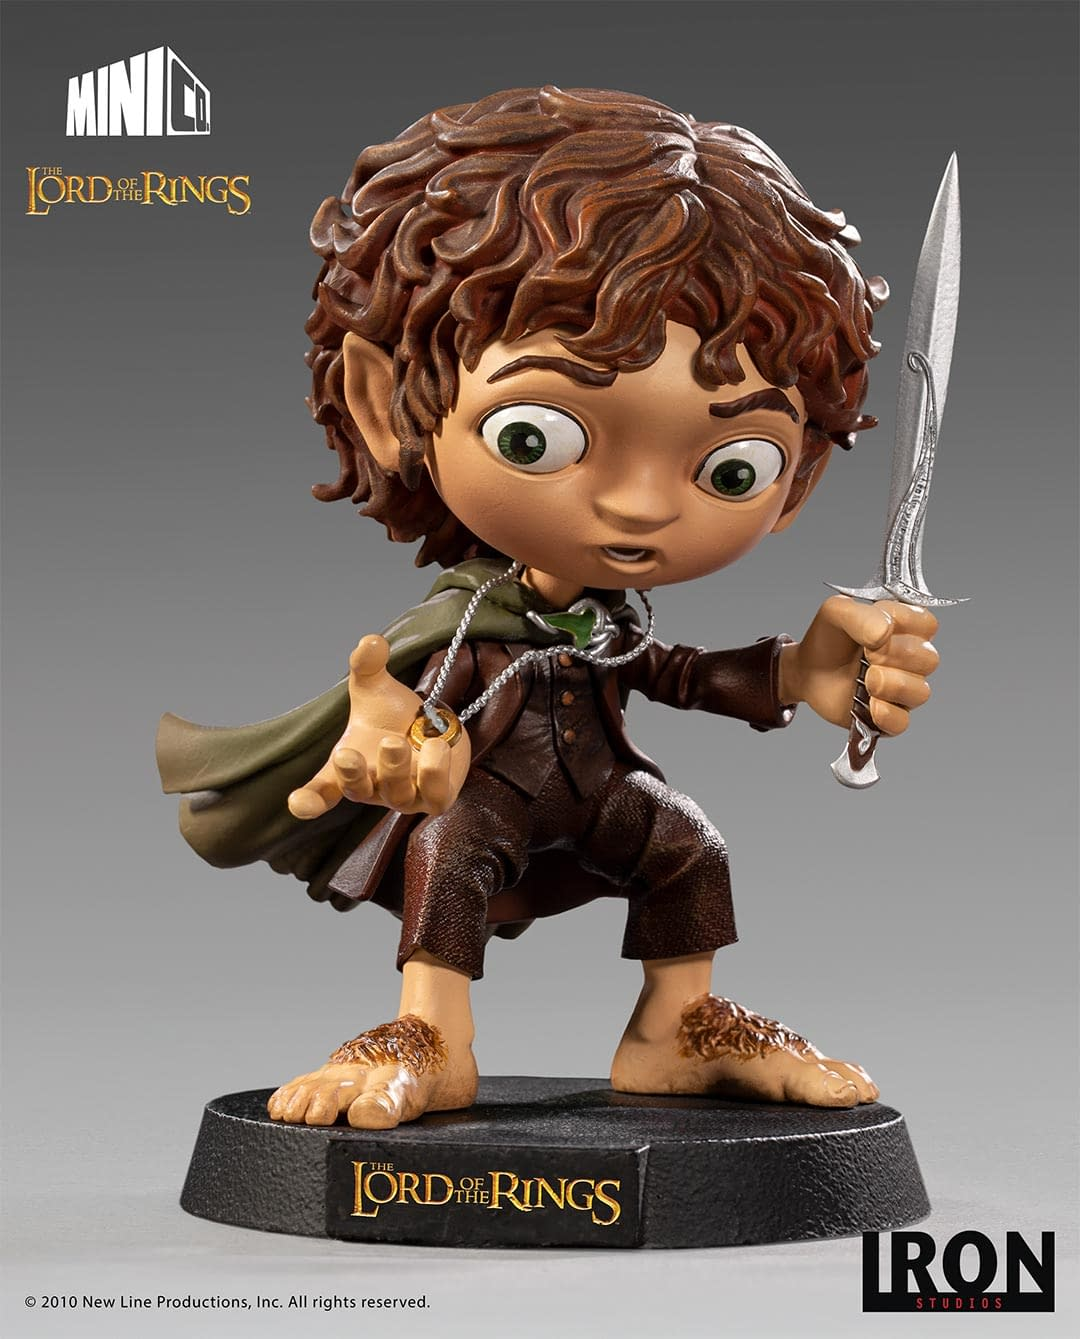 Iron Studios Lord of the Rings Minico Statue Frodo Baggins